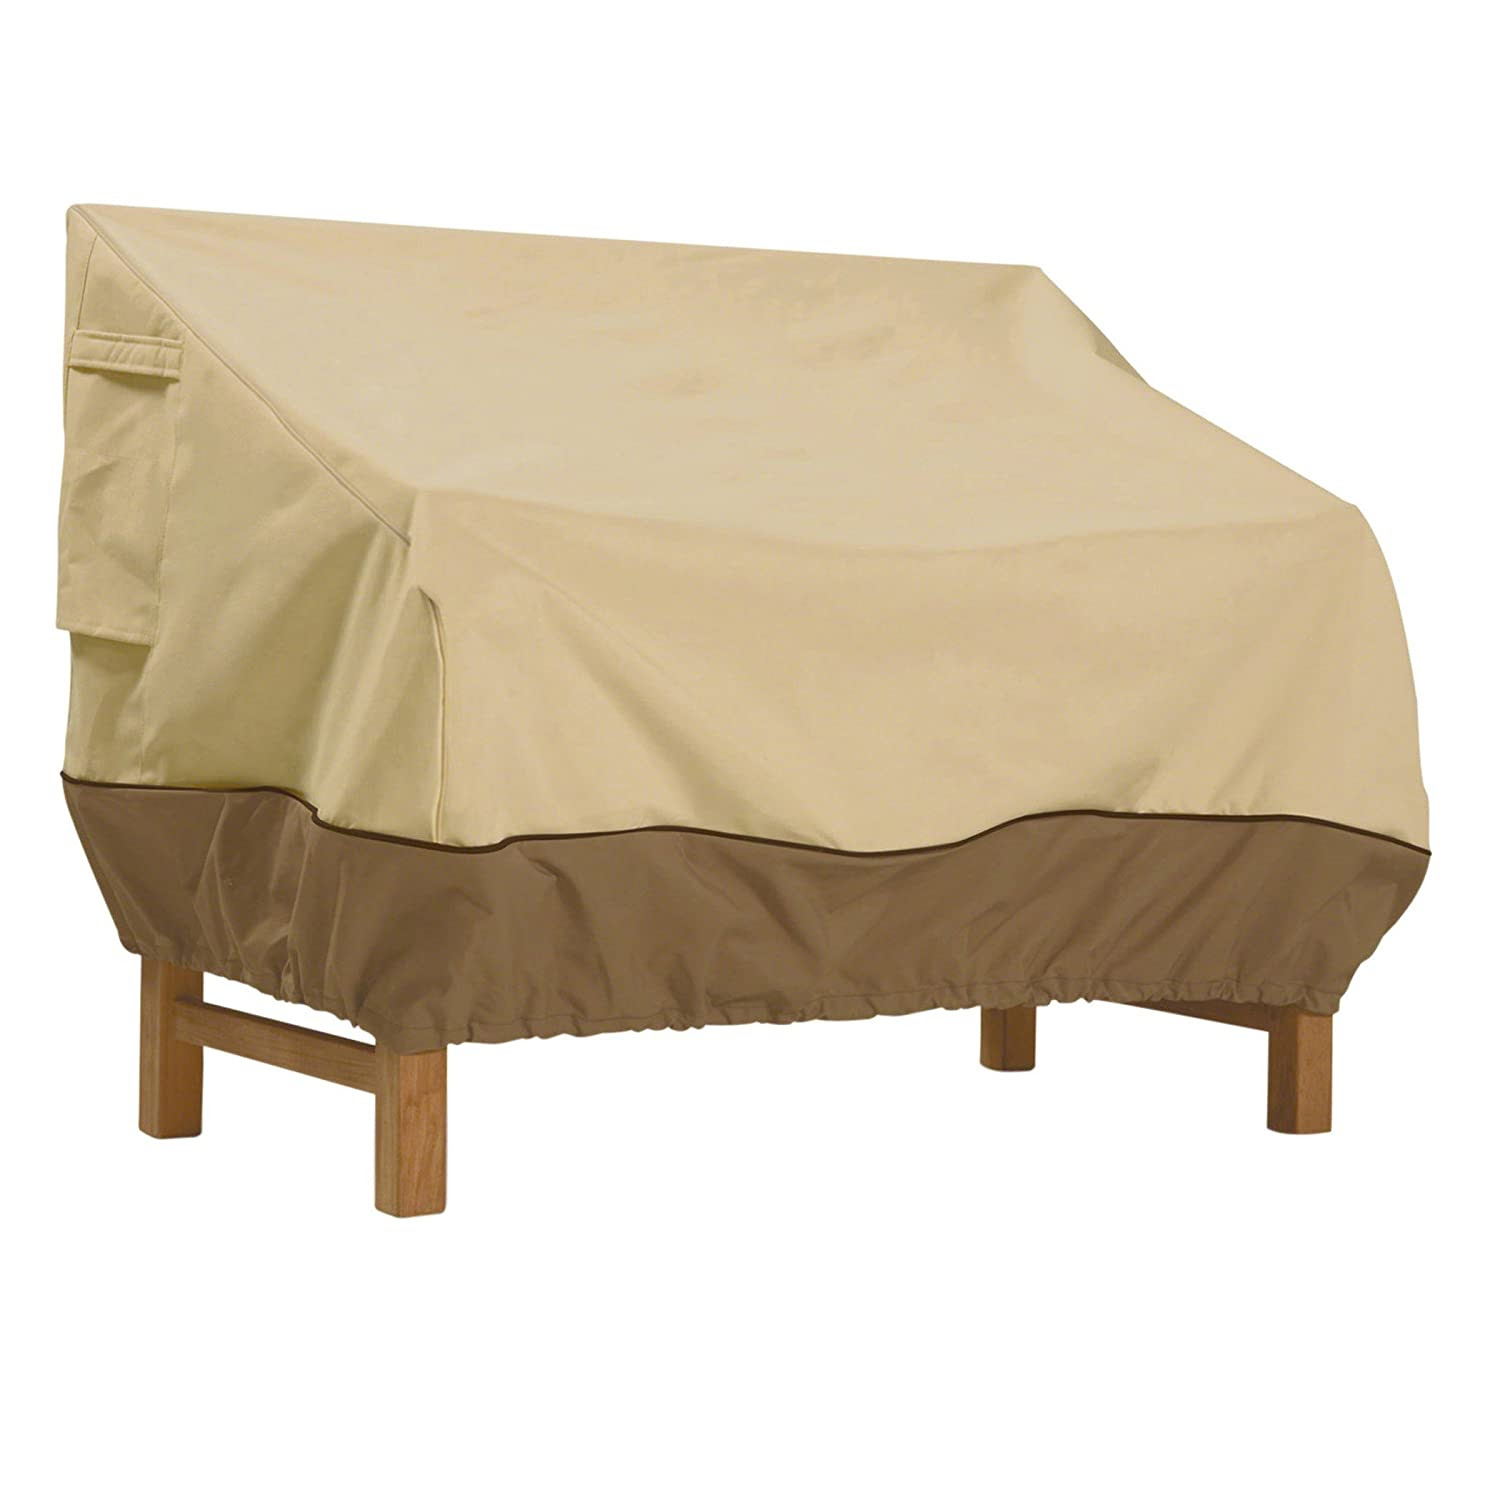 outdoor garden furniture covers. Outdoor Furniture Covers Kitchen Layout And Decorating Ideas: Patio Uk Garden